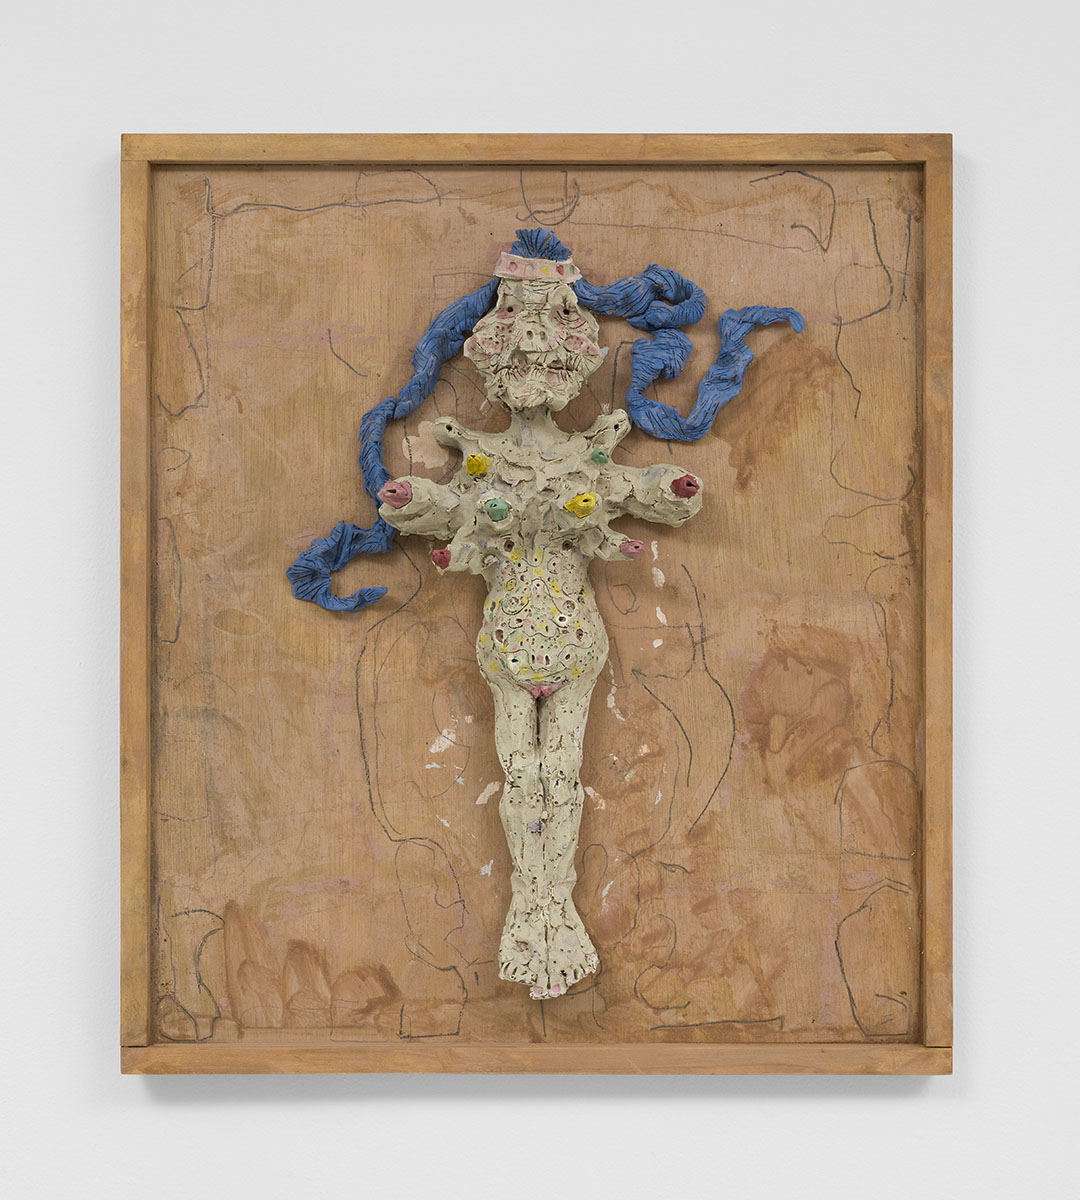 Richard Hawkins - Overmaiden Goddess, 2015, glazed ceramic in artist's frame, 25 ¾ x 22 ¾ x 5 inches